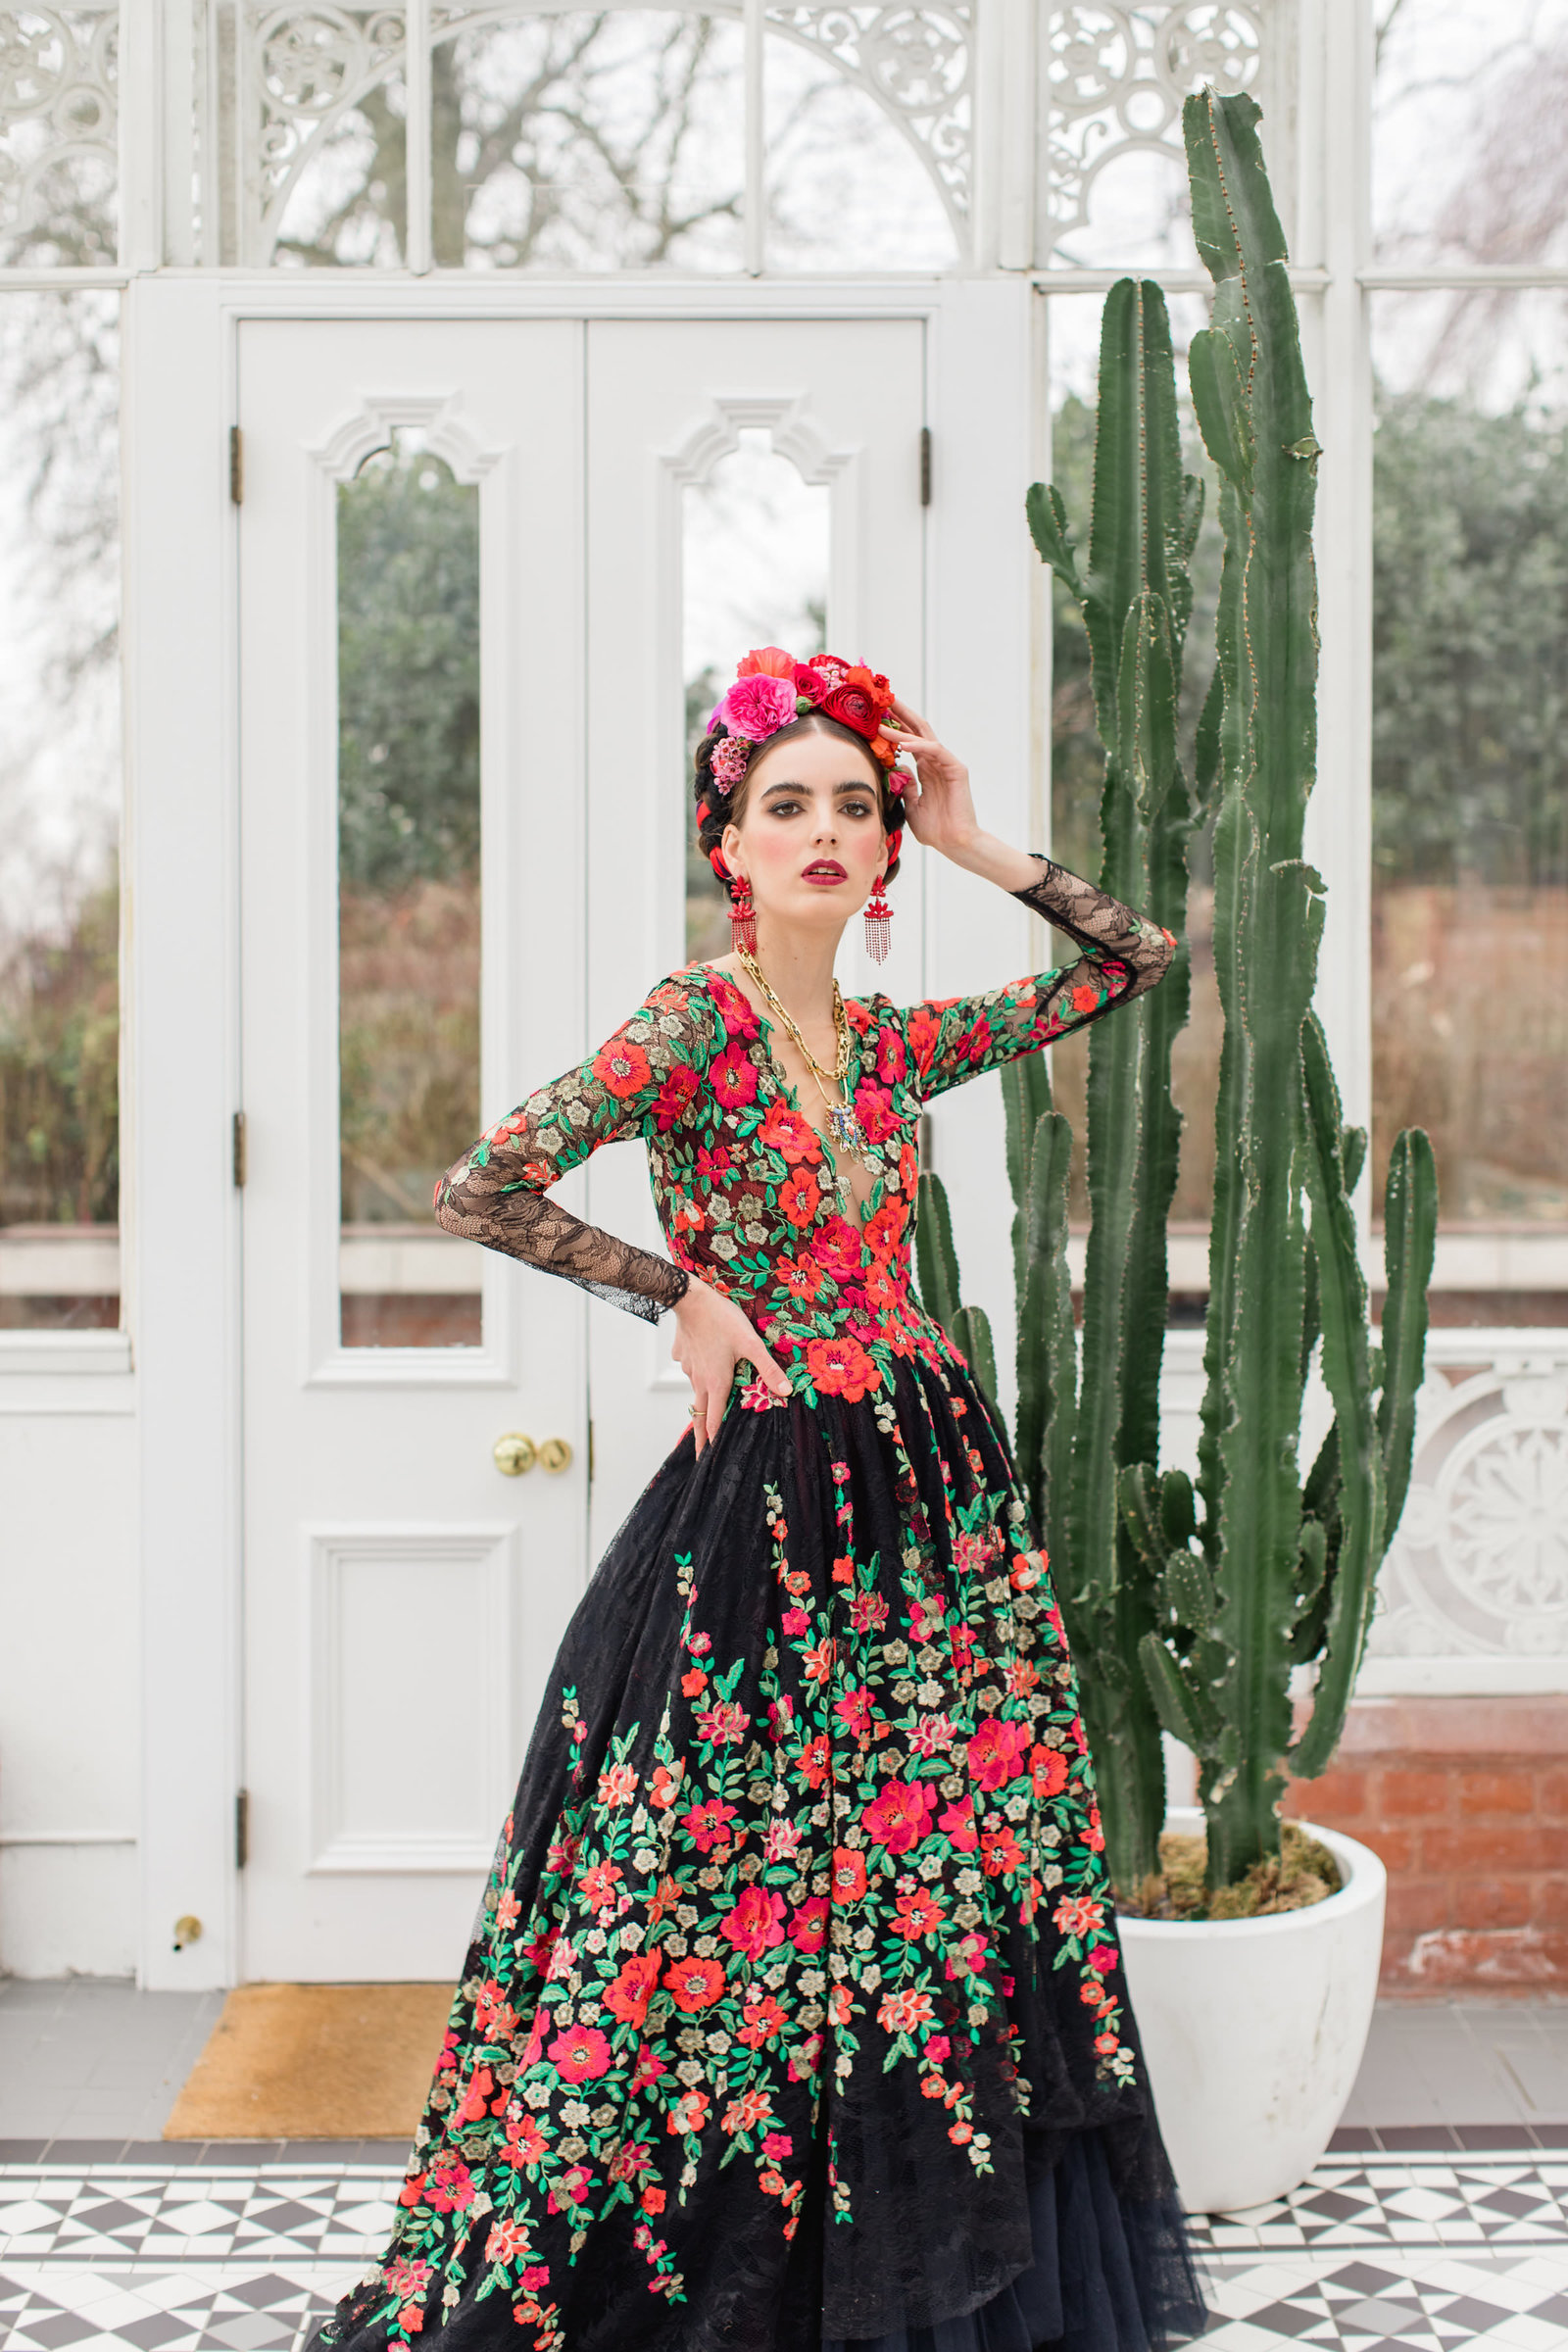 Frida-Kahlo-embroidered-floral-dress-JoanneFlemingDesign-RobertaFacchiniPhoto (48)